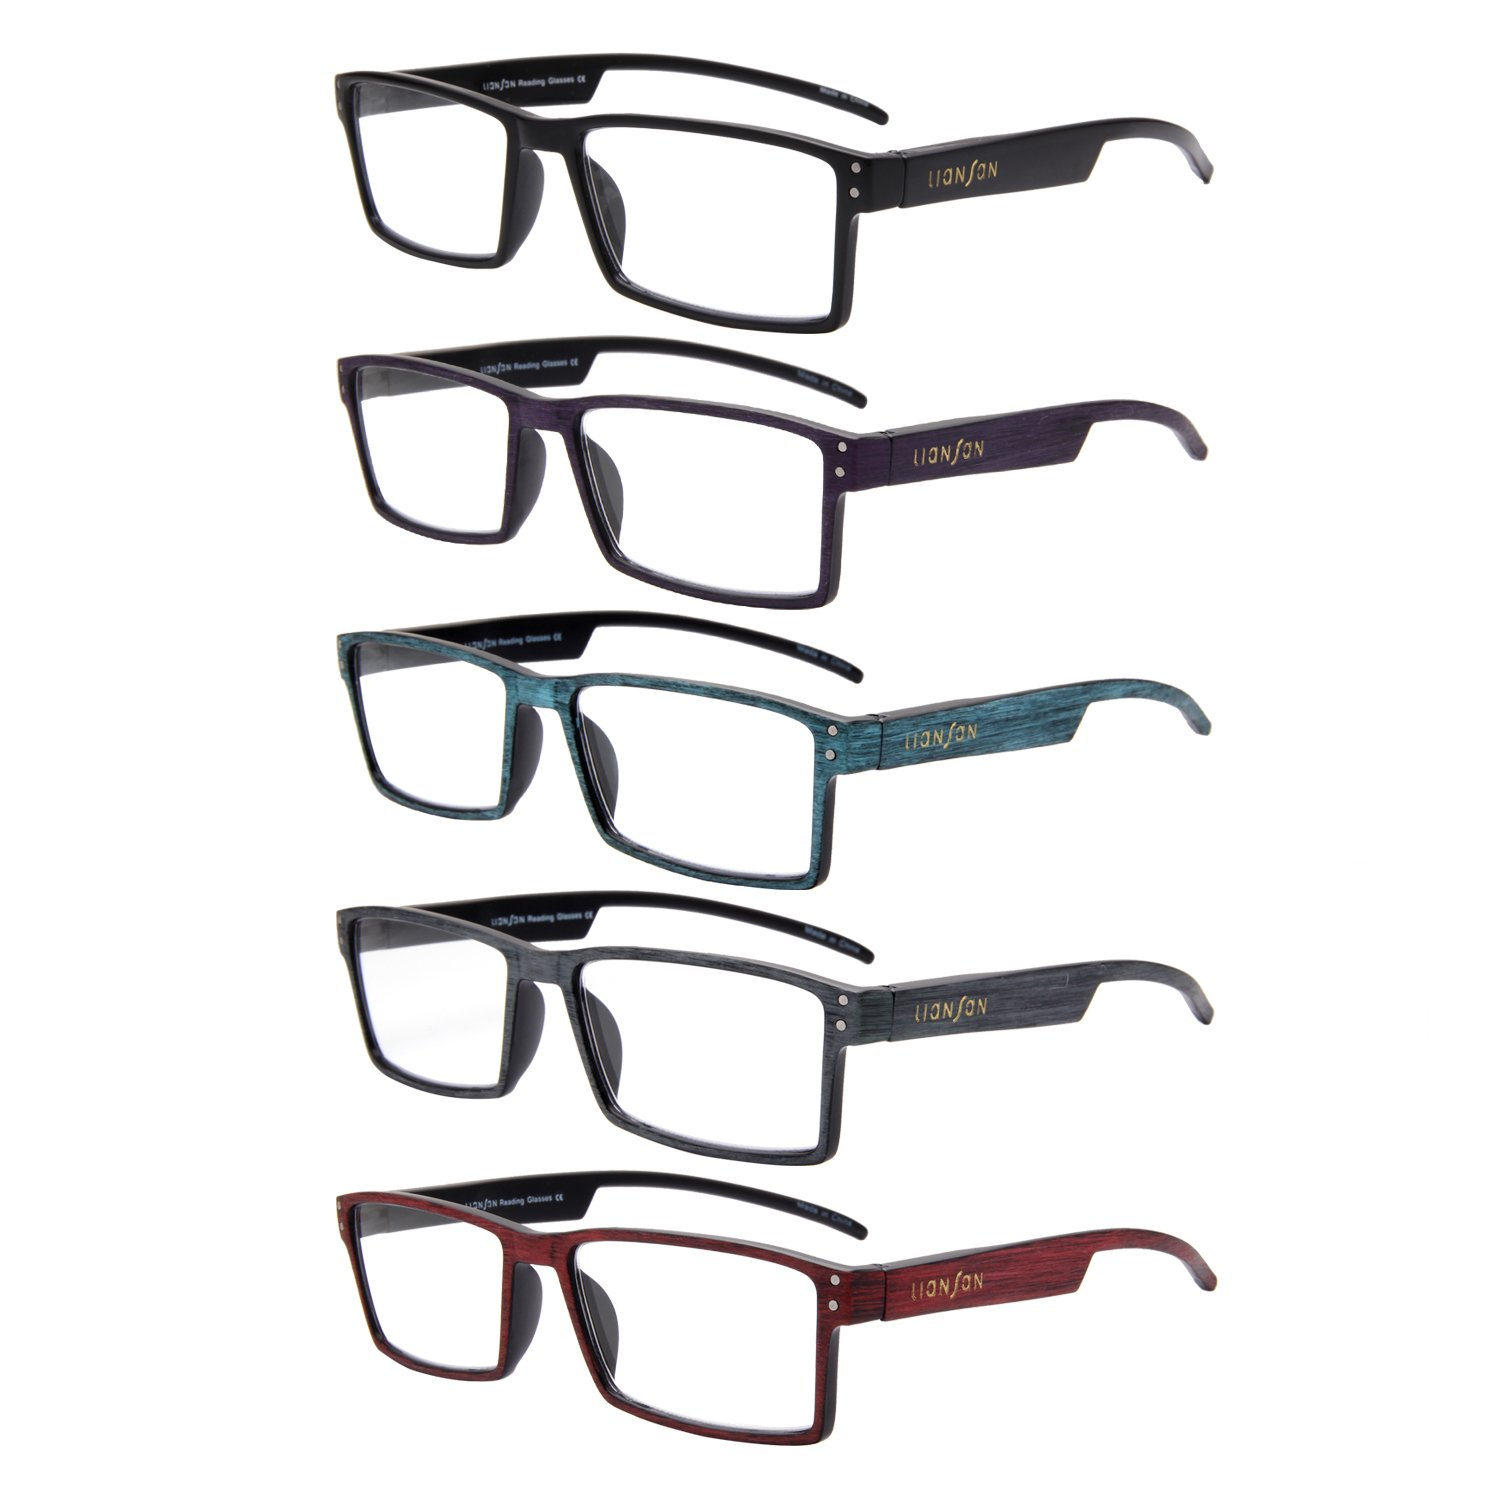 8333821d7cb Amazon.com  LianSan Reading Glasses 5 Pack Spring Hinge Quality Fashion  Wood-Look Printed Arms Men and Women Unisex Glasses L3719(+2.00)  Clothing